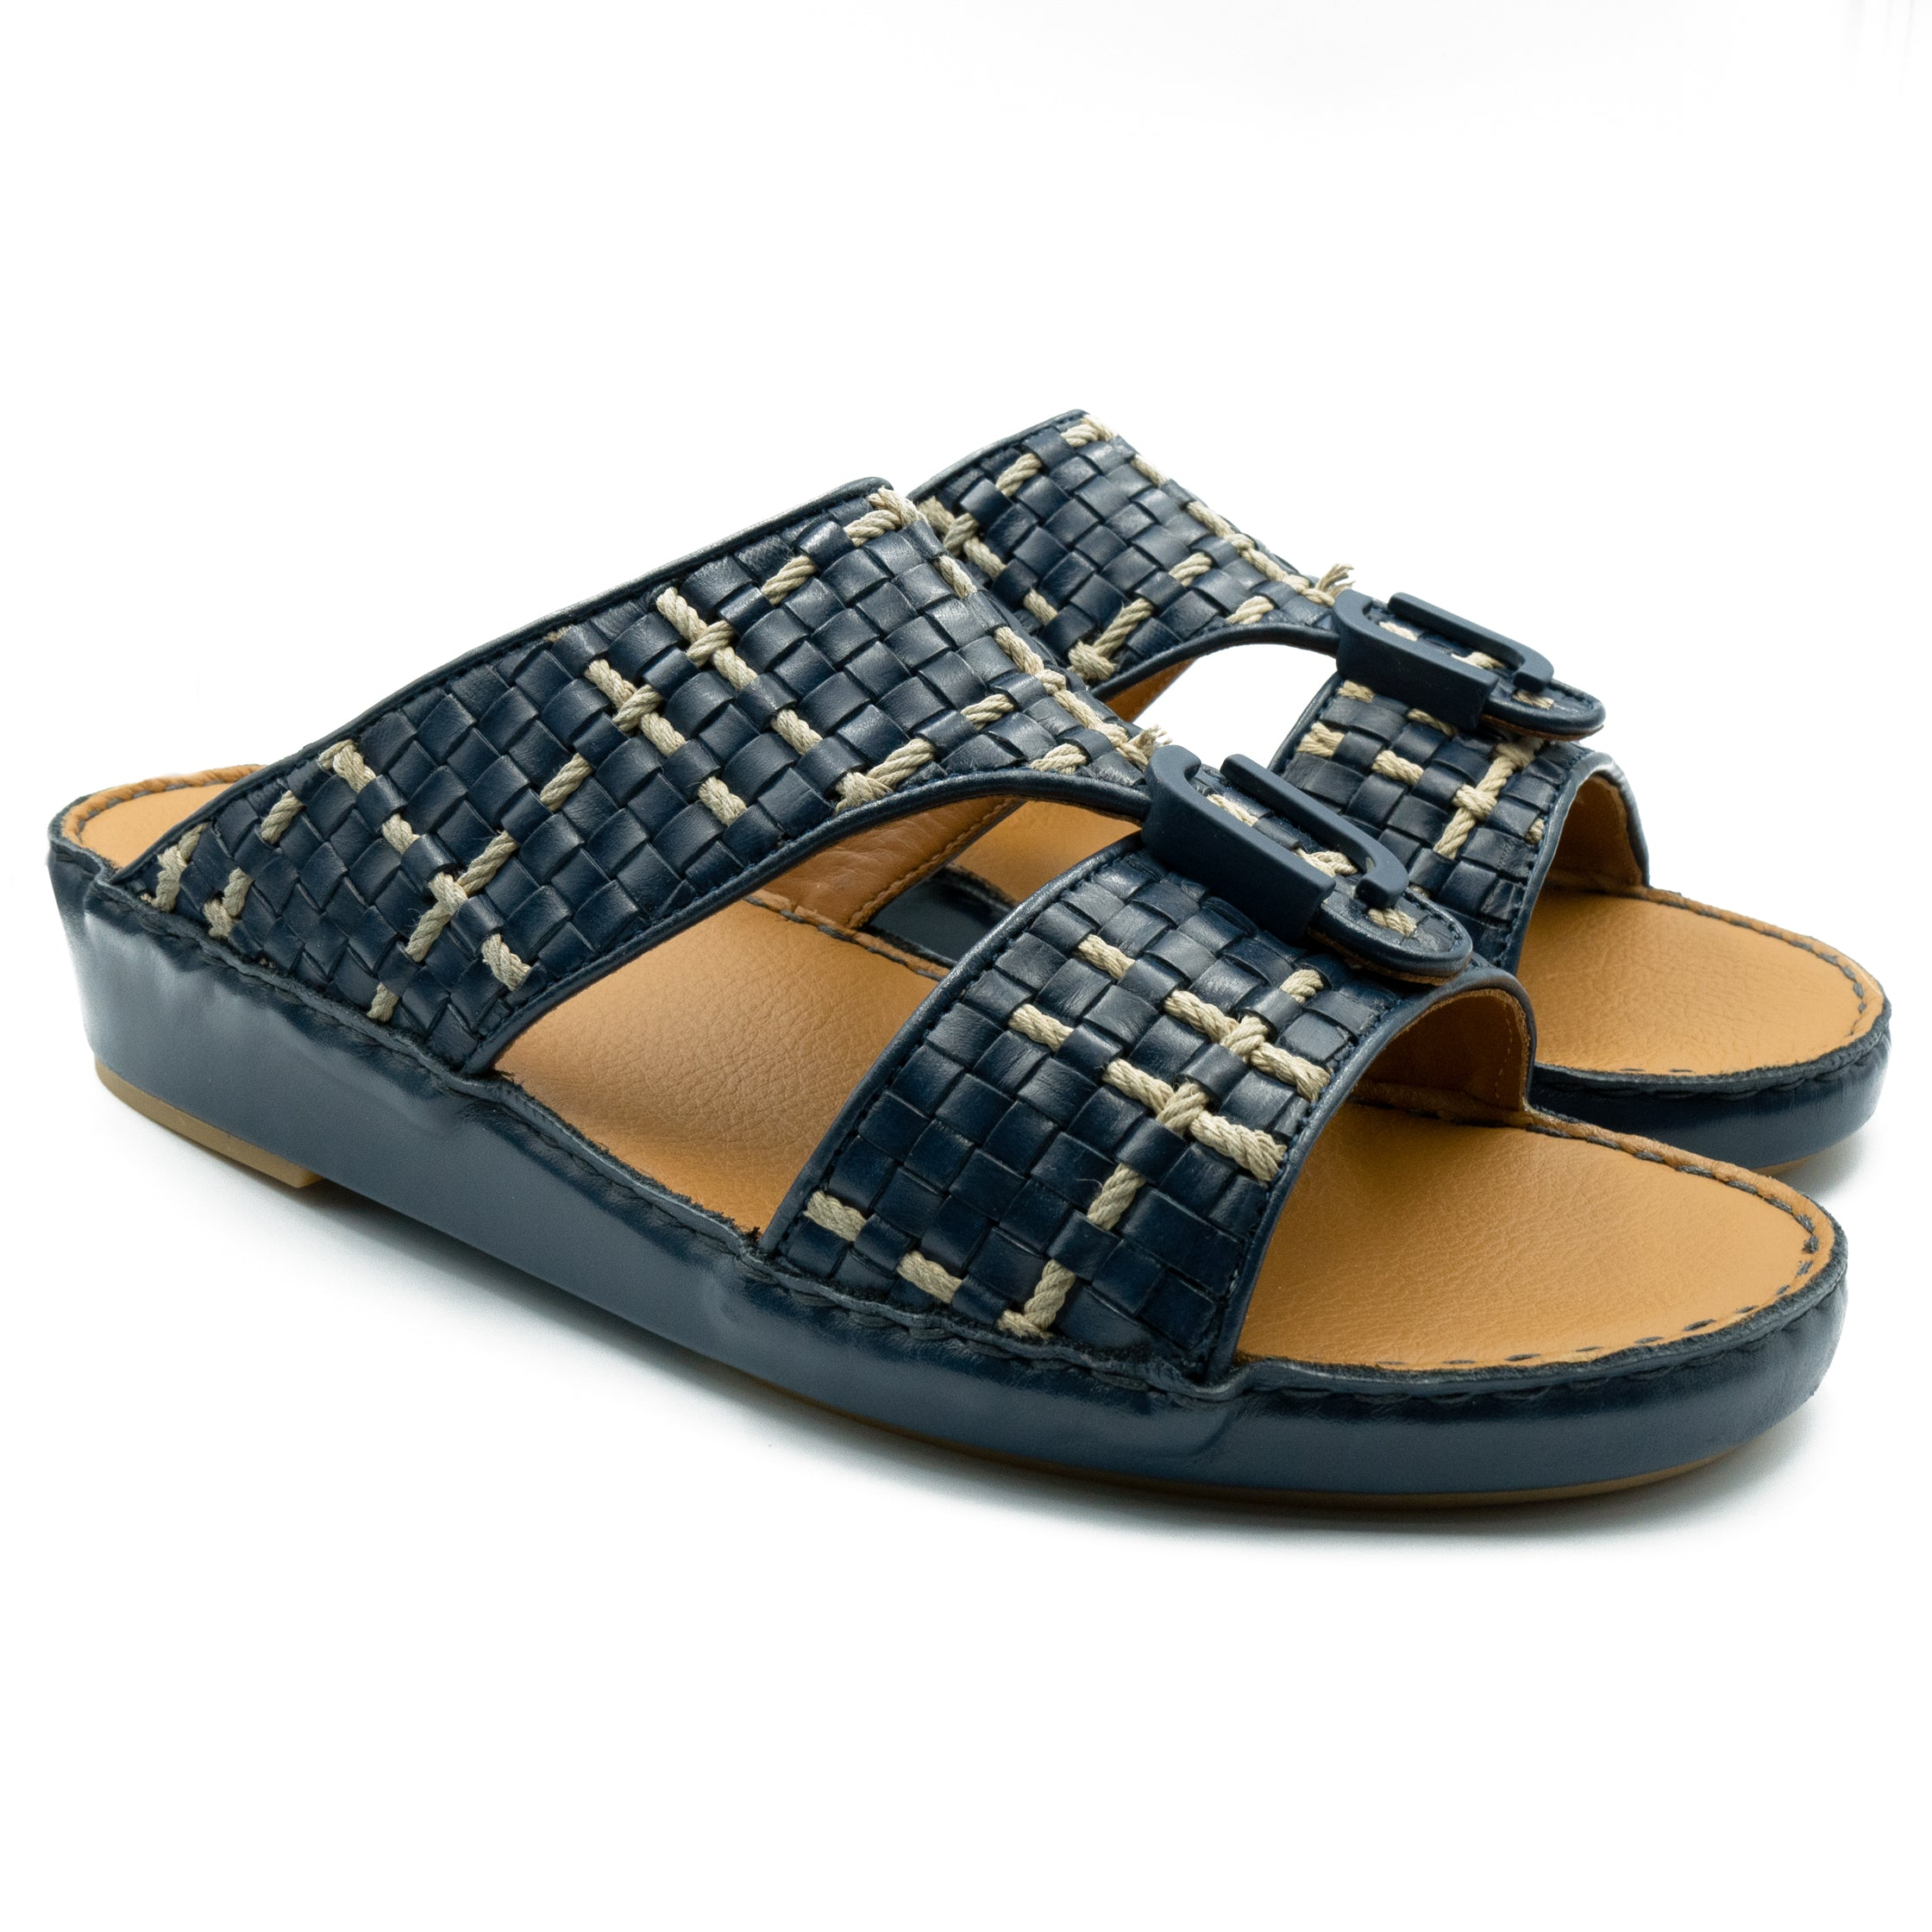 Navy, Flat, stiched, Flat, Sandals, Ramadan, Collection, Arabic, Sandals, Accessories